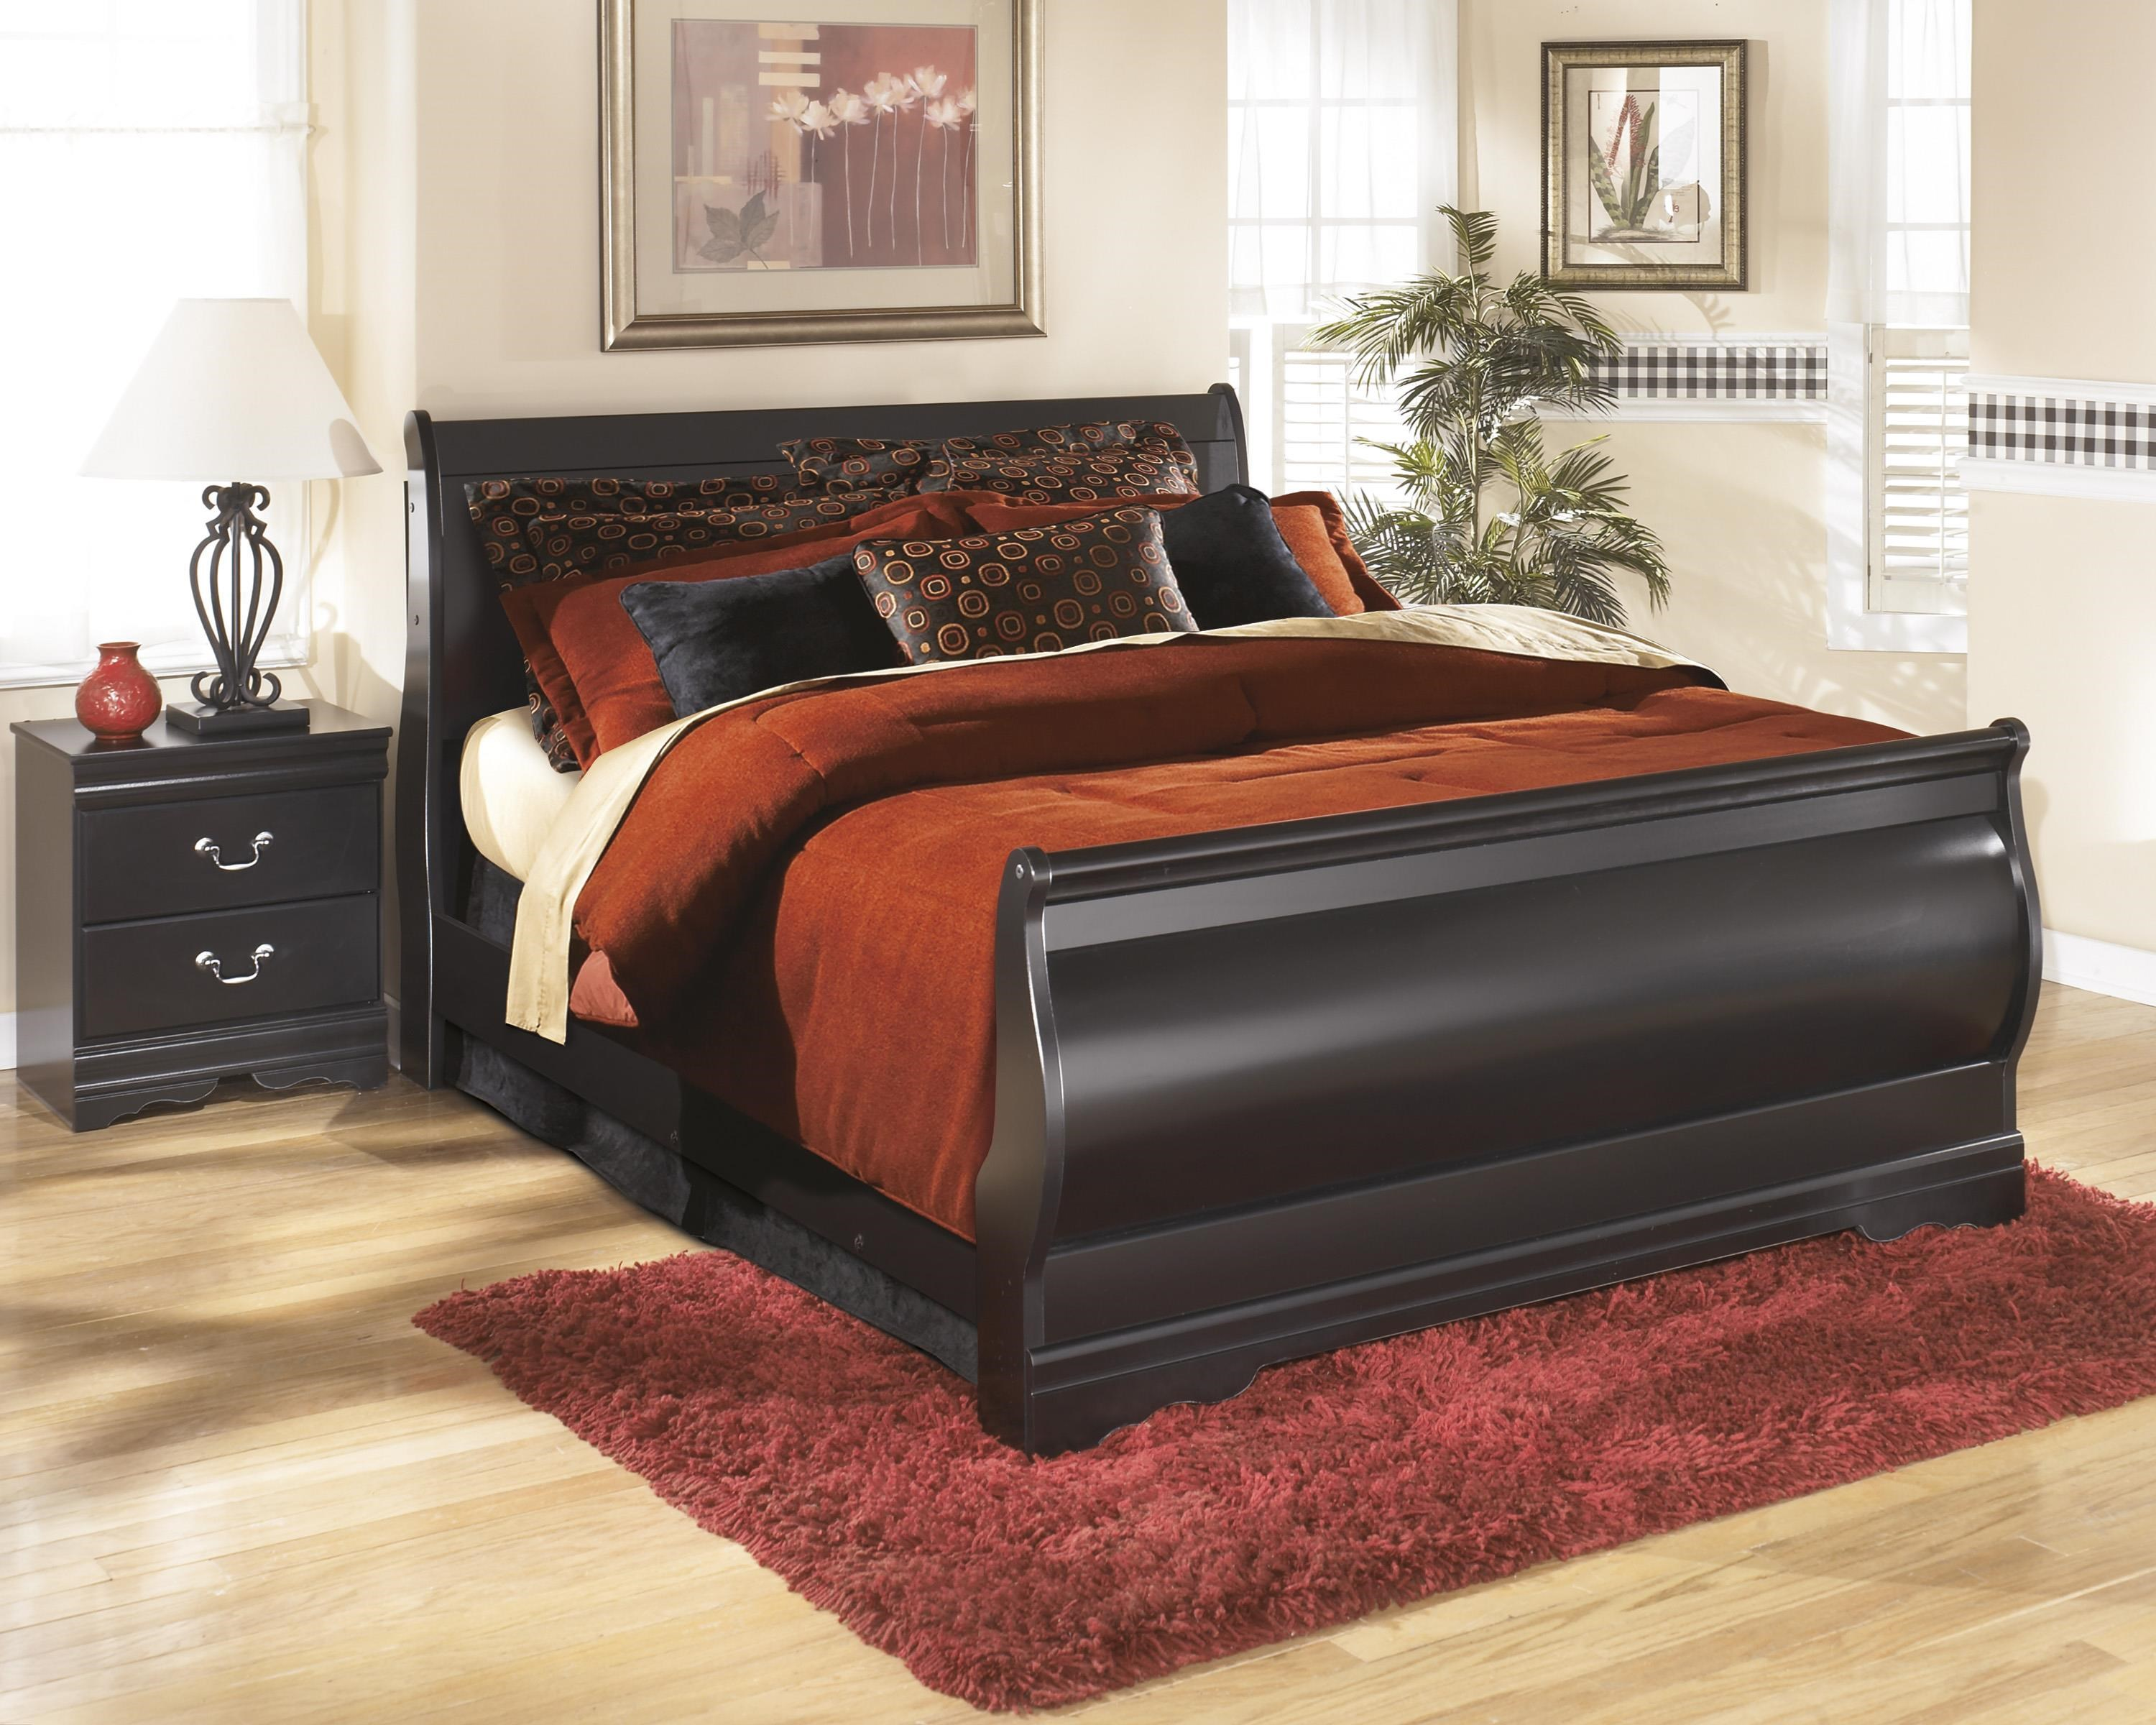 Huey Vineyard Full Sleigh Bed, Nightstand and Chest Packag by Signature Design by Ashley at Sam Levitz Outlet